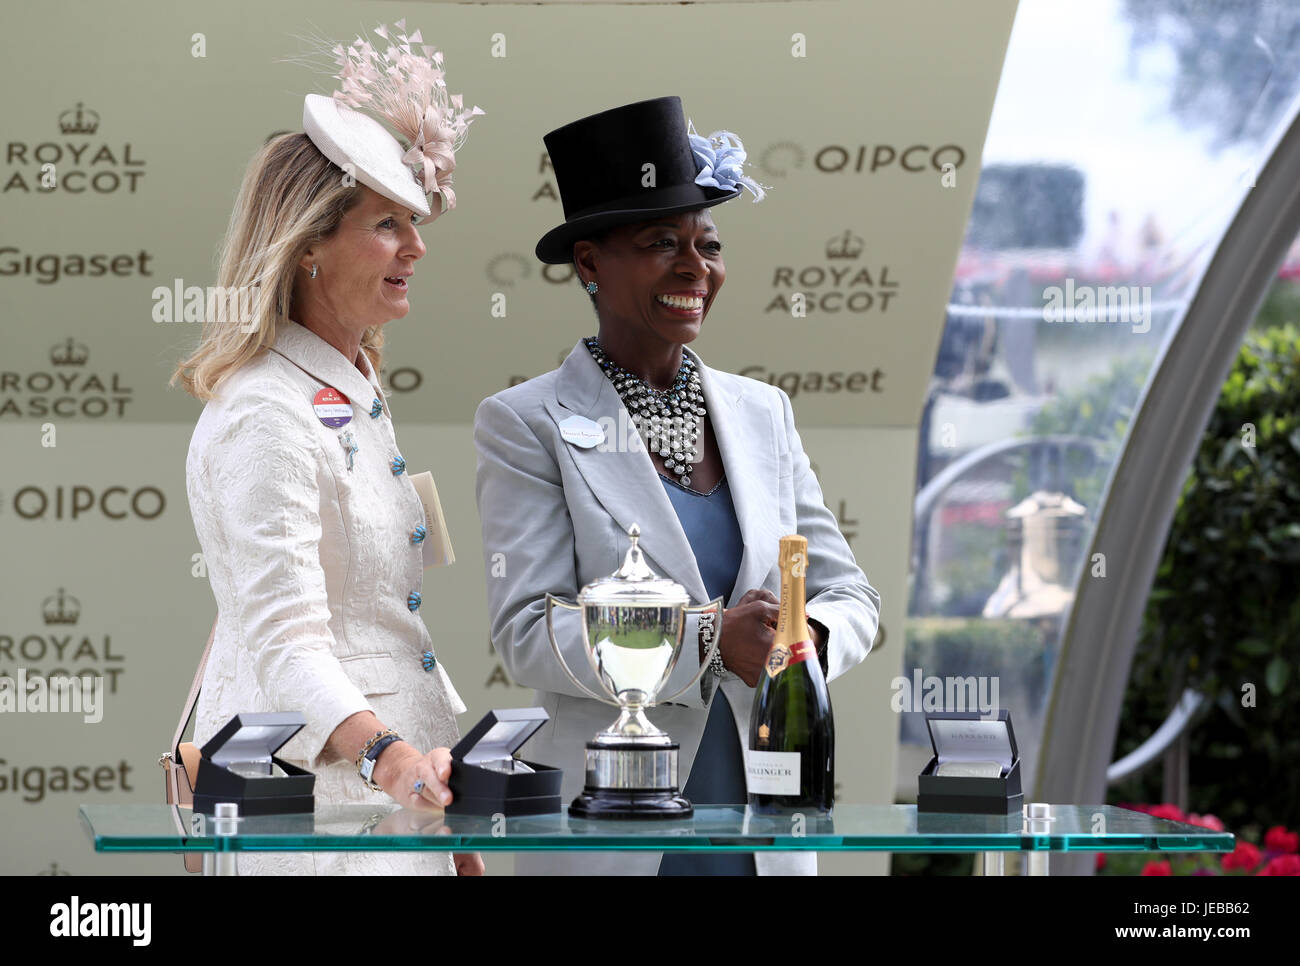 Sophie Weatherby (left) and Baroness Floella Benjamin (right) present the trophy for The Commonwealth Cup during Stock Photo